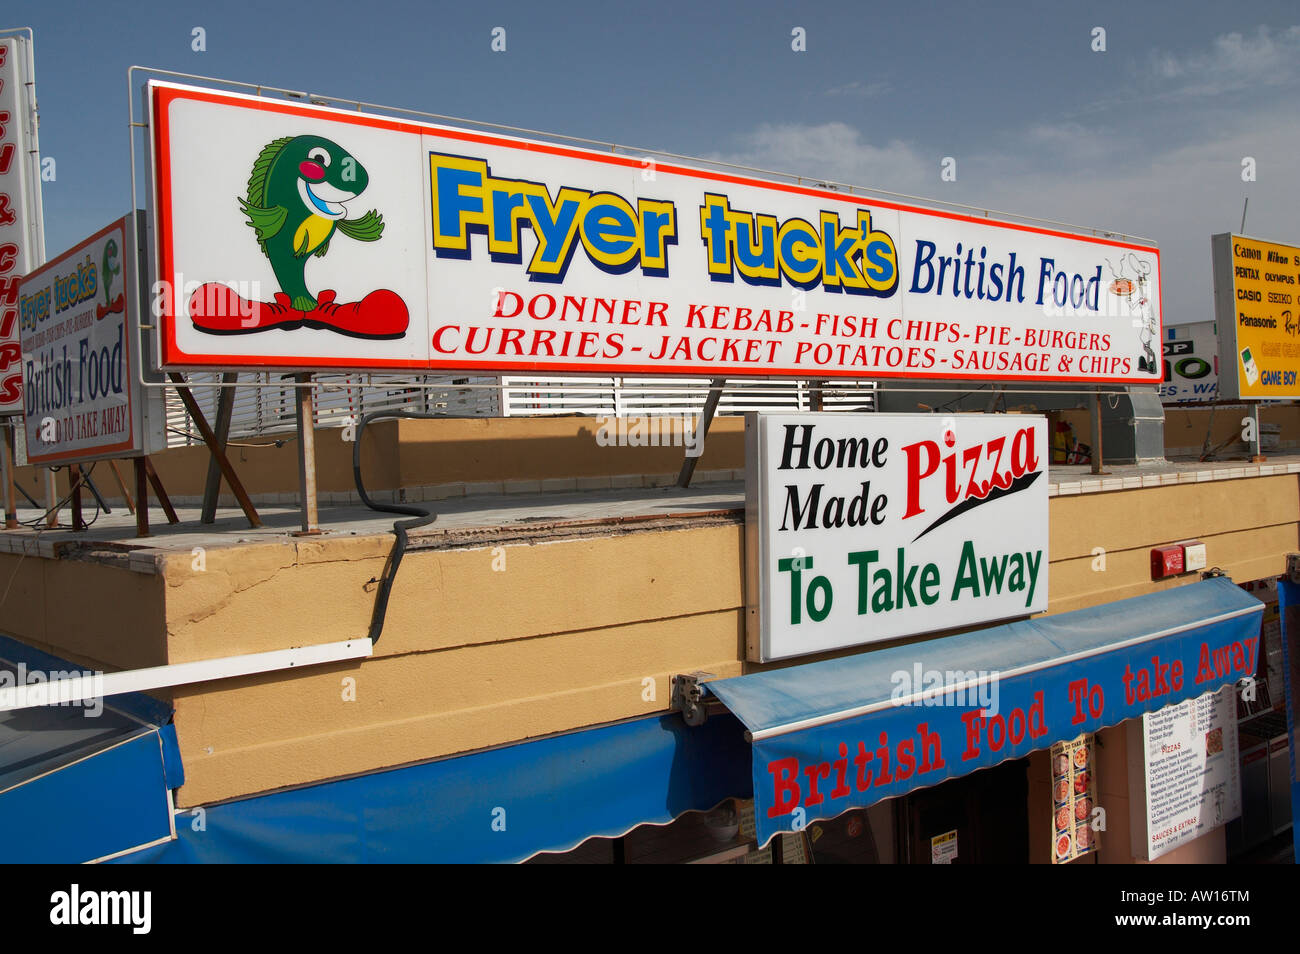 British bar in Puerto Rico, Gran Canaria advertizing British food. - Stock Image